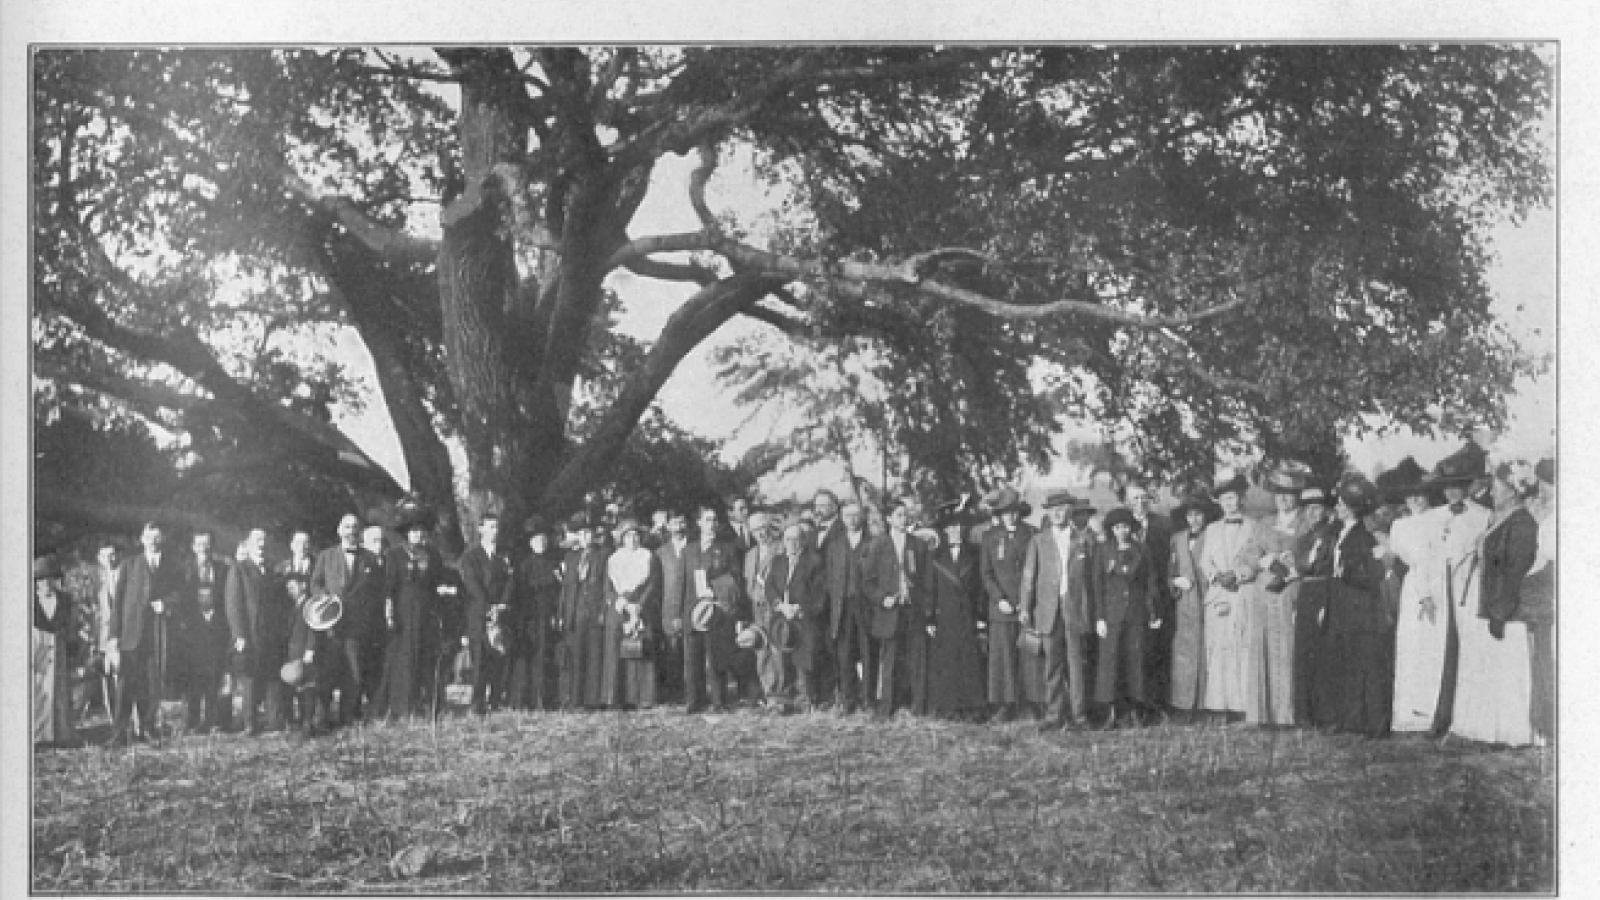 Society of American Indians Conference, Image 3